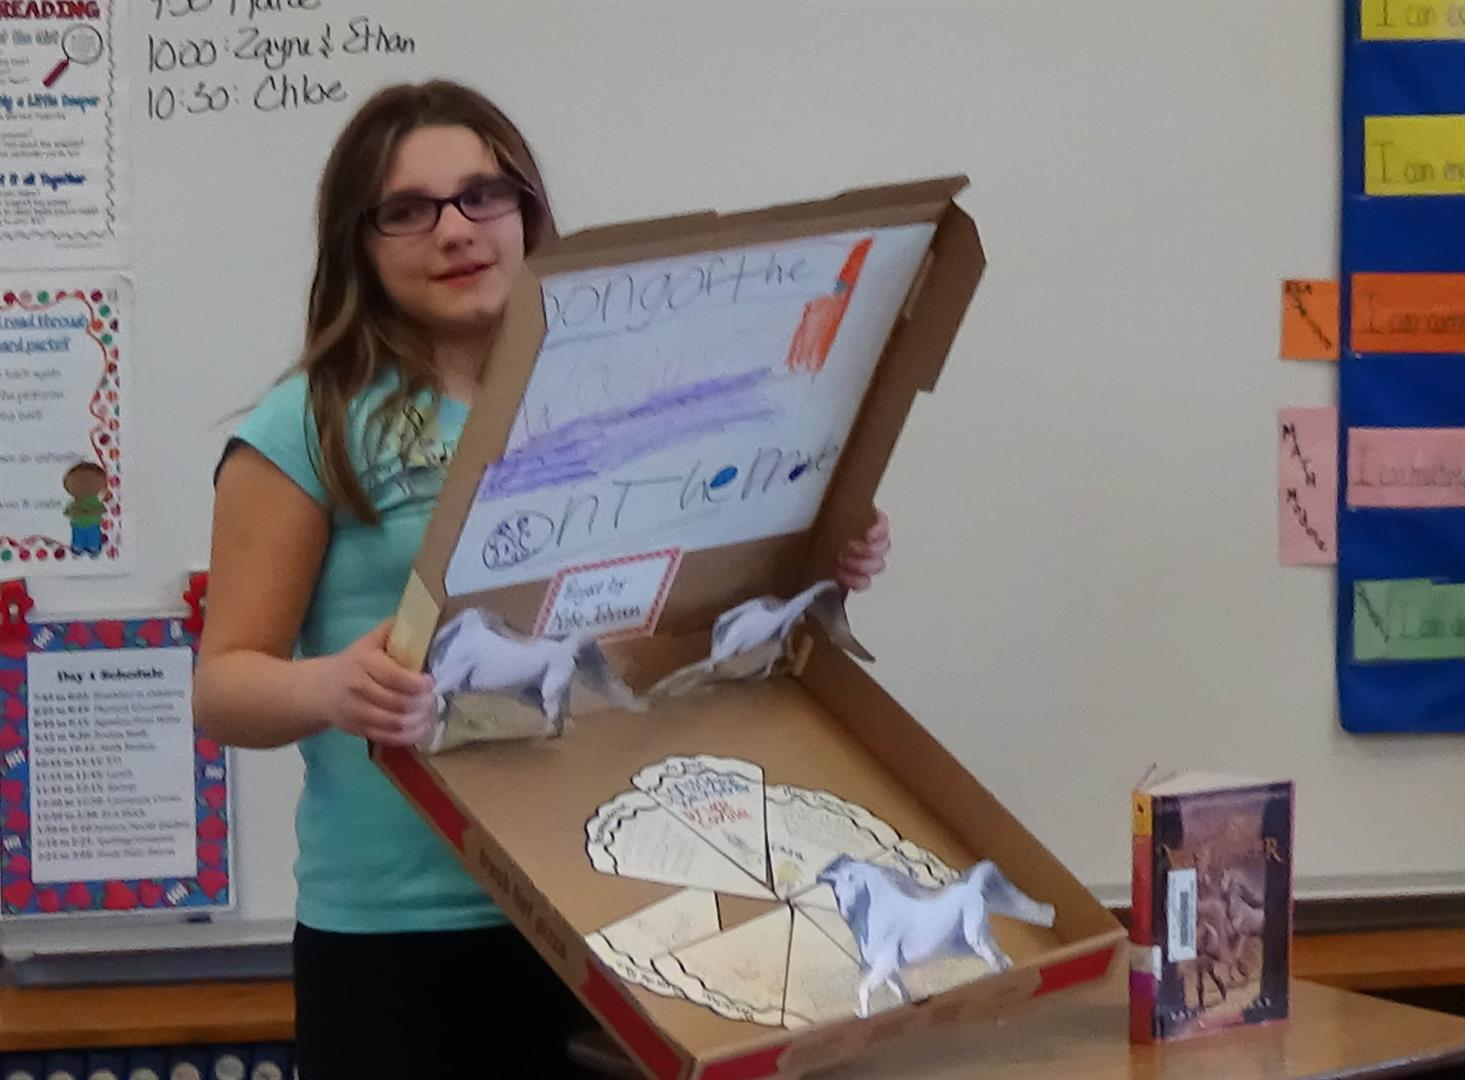 A student presents her book report